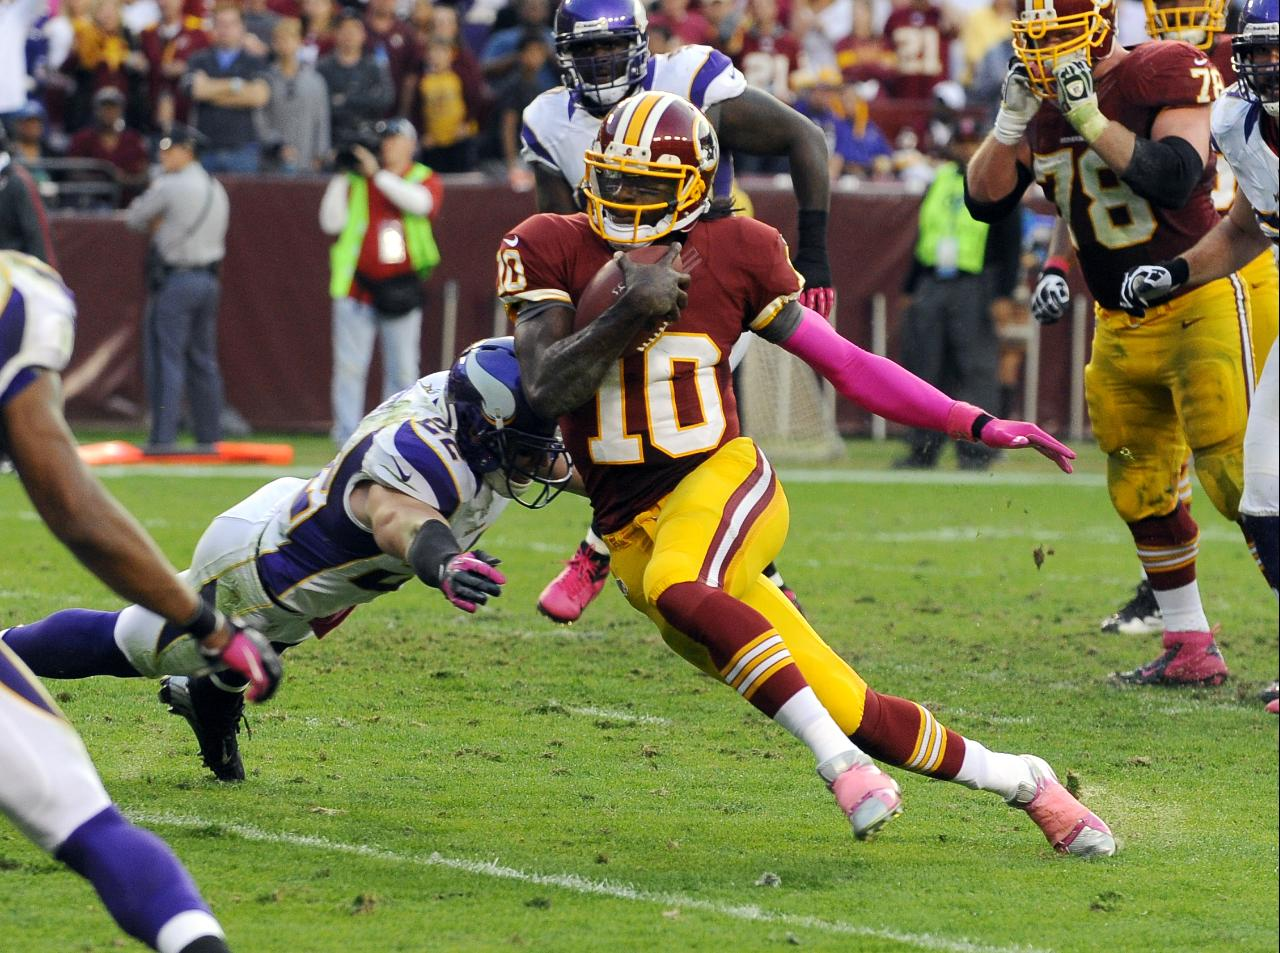 sports popular across football sport soccer defense griffin robert iii american giants bloglet redskins